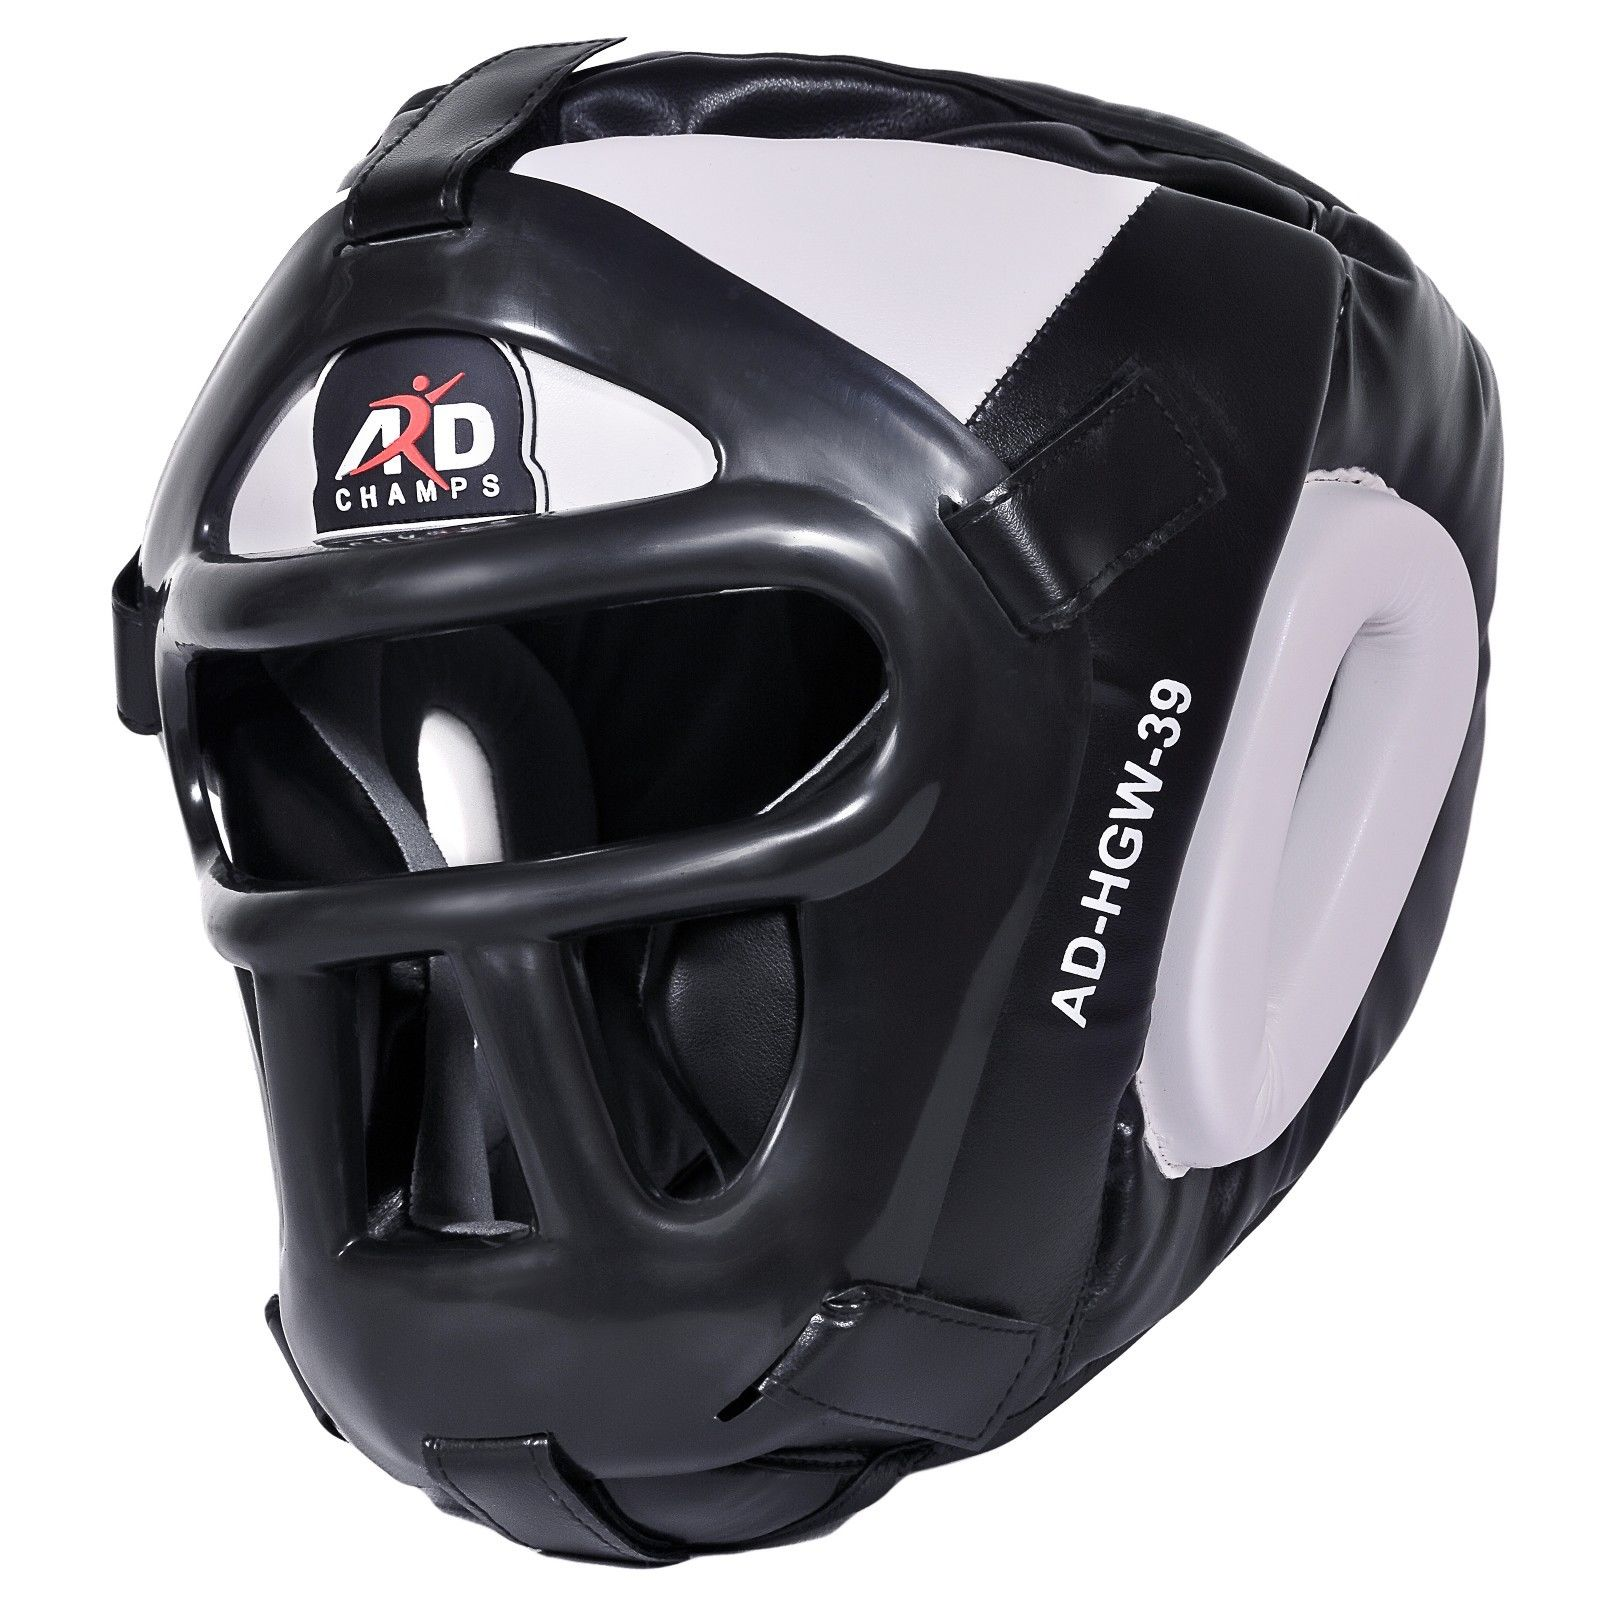 ARD CHAMPS Protector Guard Wrestling Helmet Head Gear Boxing MMA Rugby Color White by